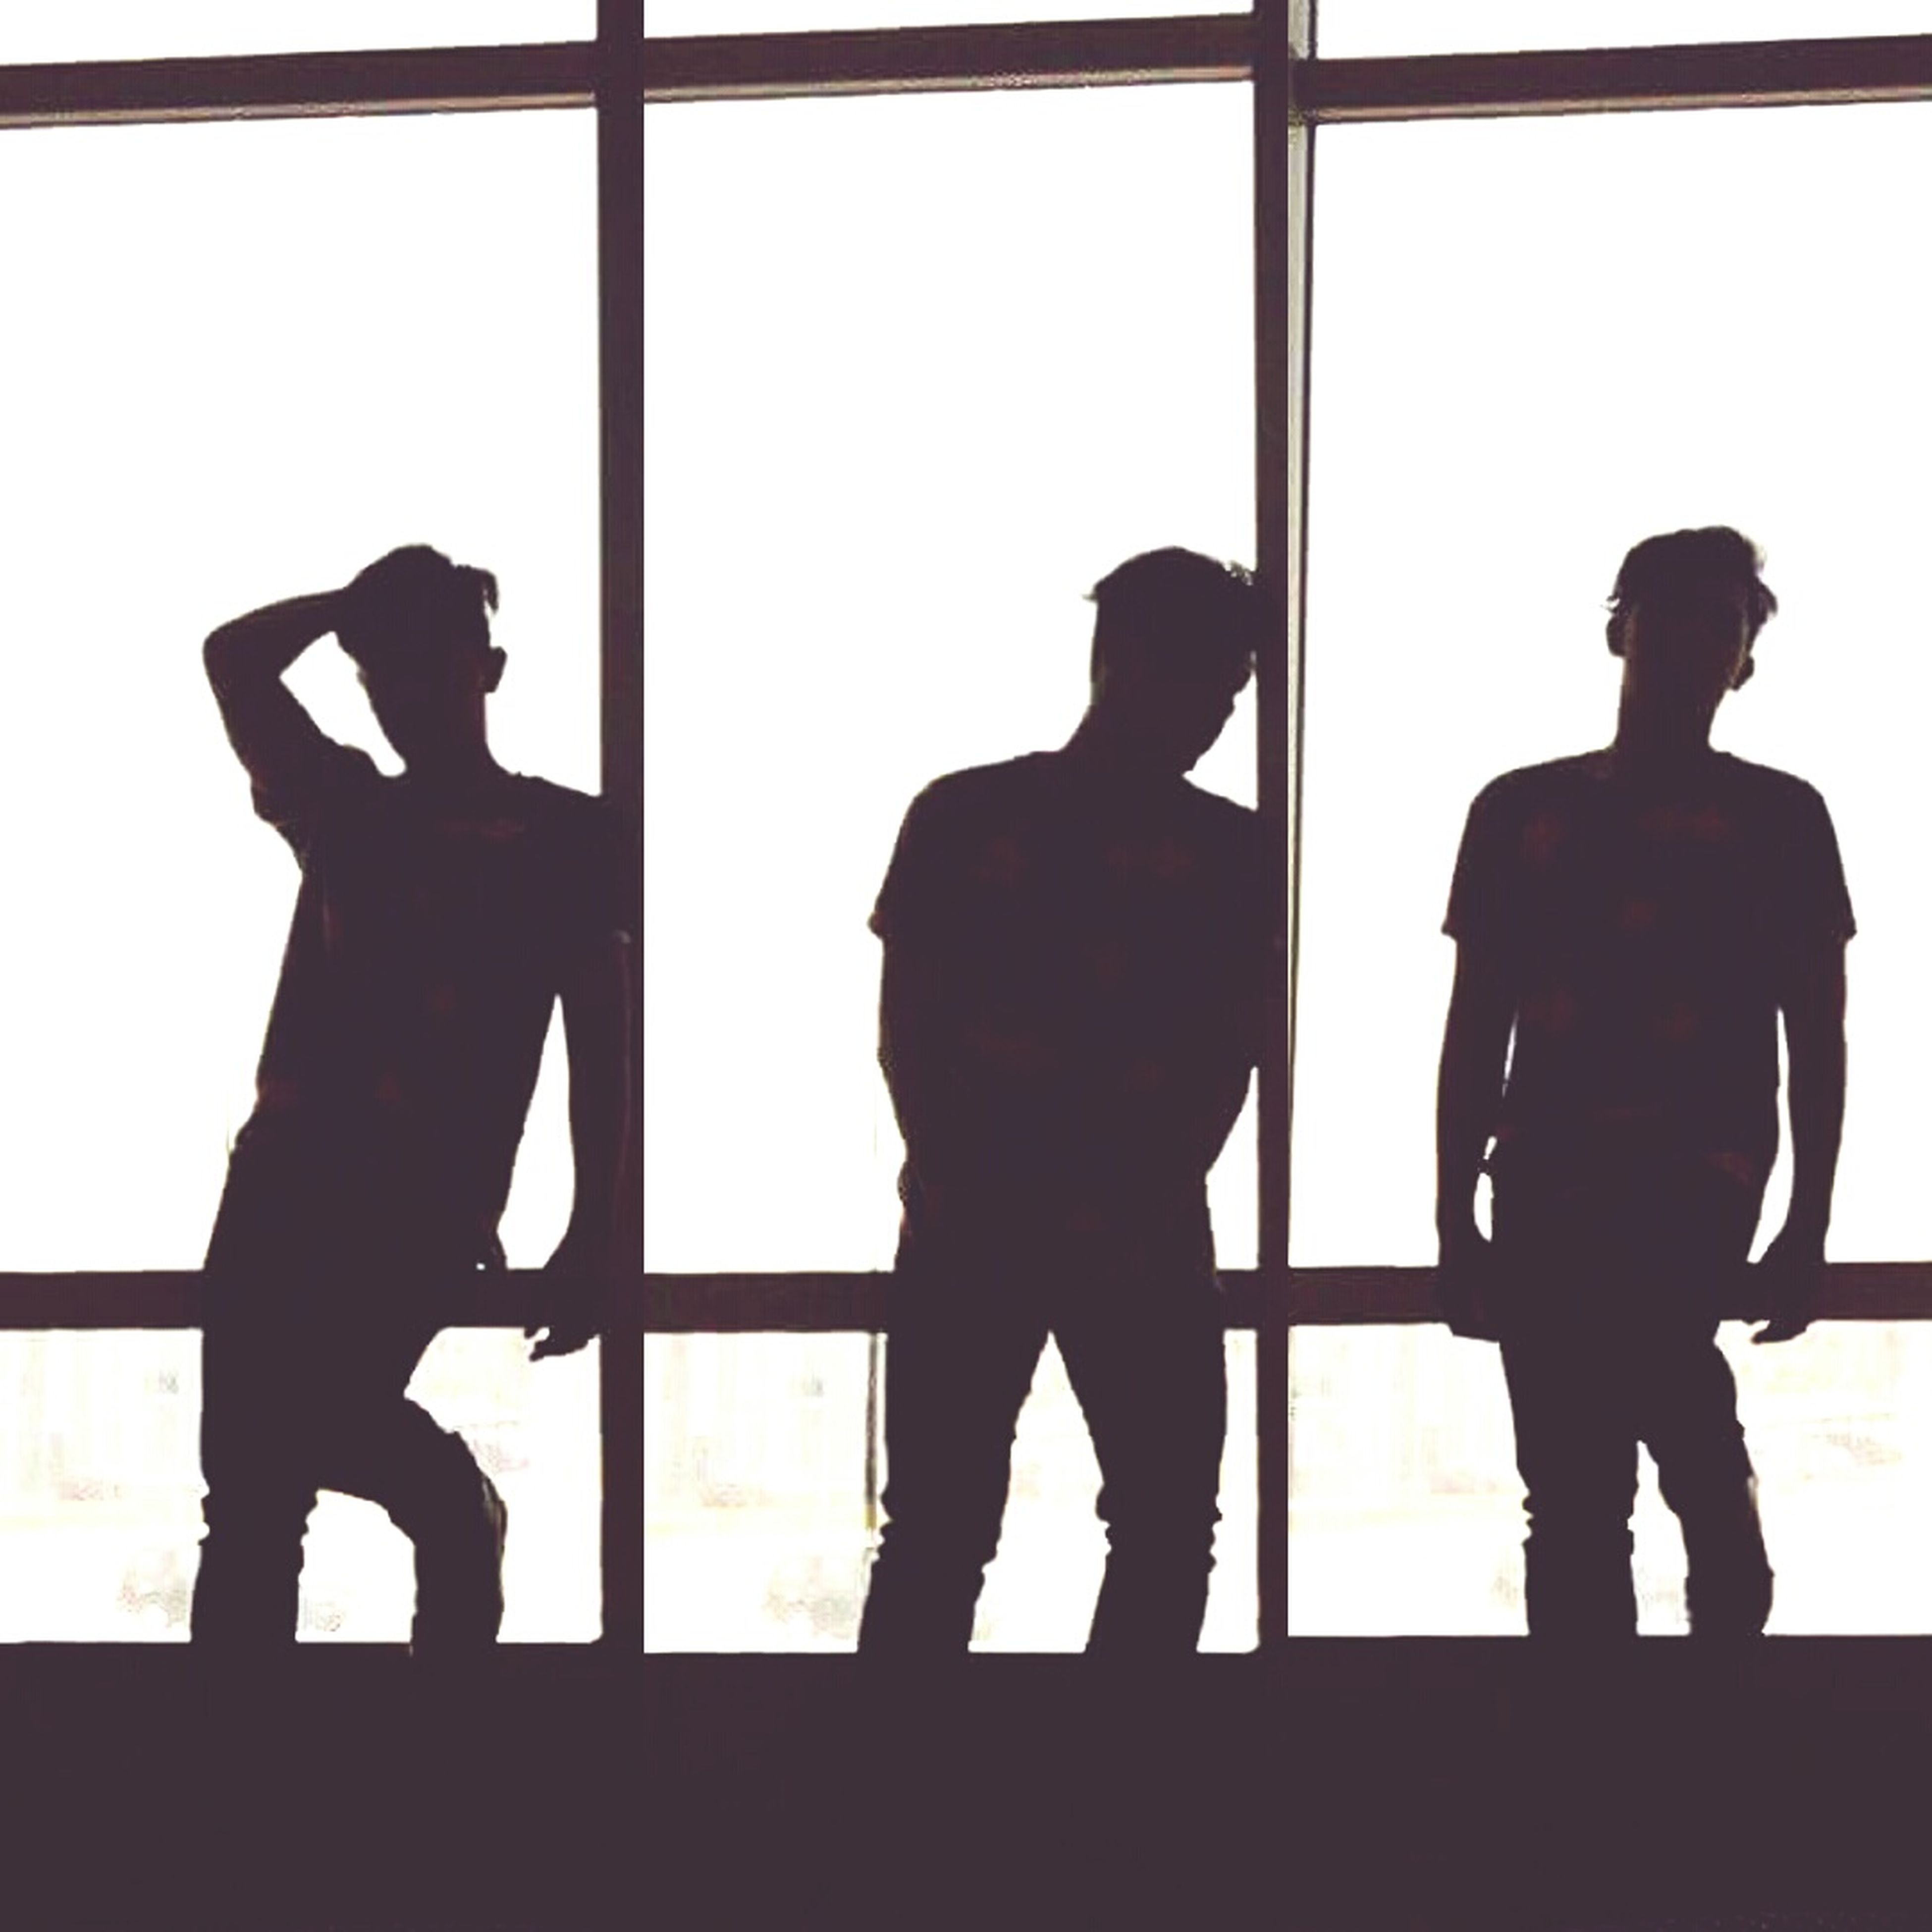 silhouette, indoors, window, standing, men, full length, glass - material, human representation, togetherness, day, outline, transparent, clear sky, lifestyles, love, door, copy space